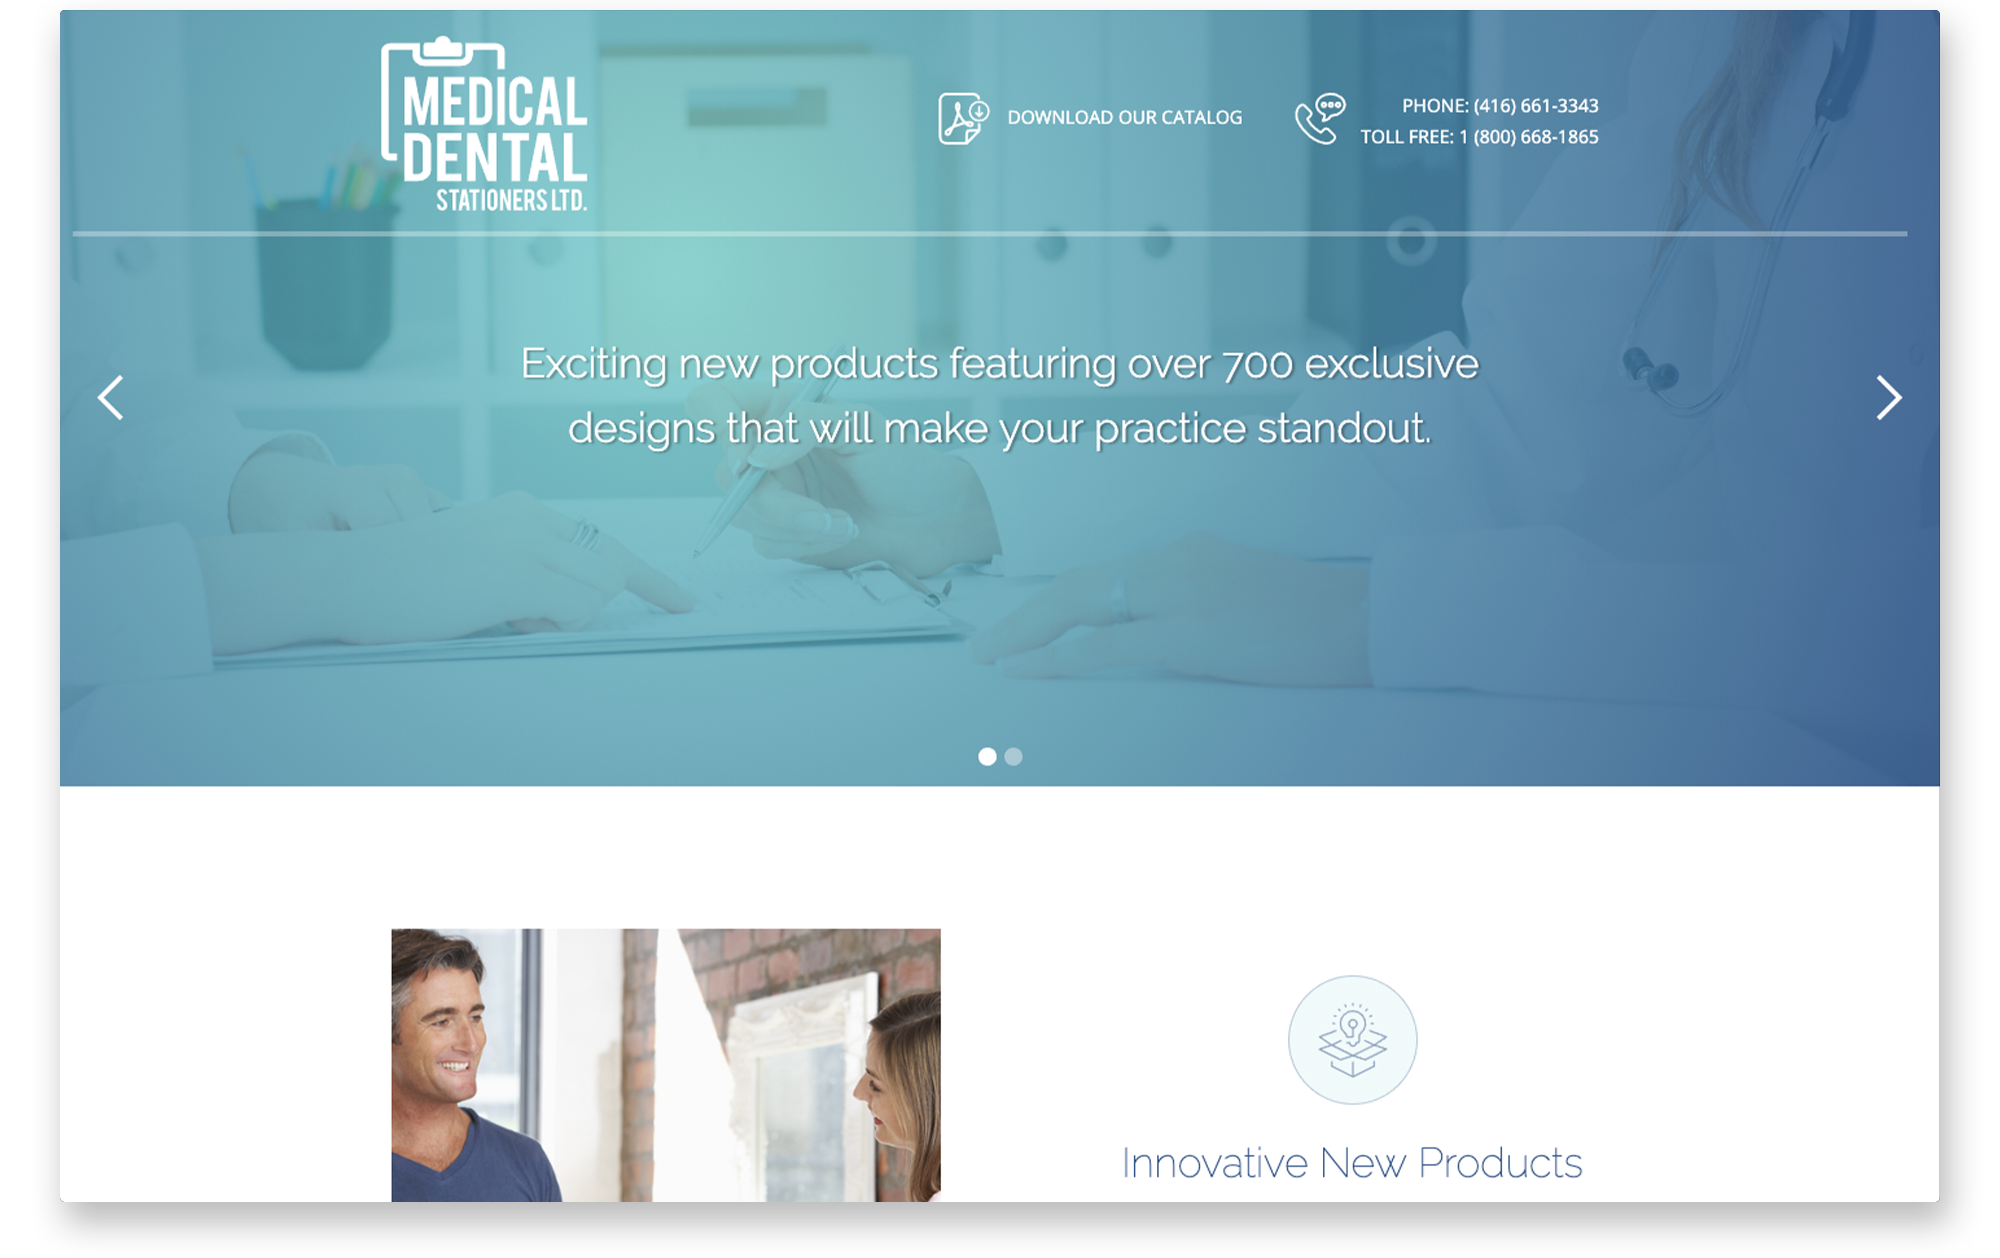 Desktop view of home hero banner for Medical Dental Stationers.